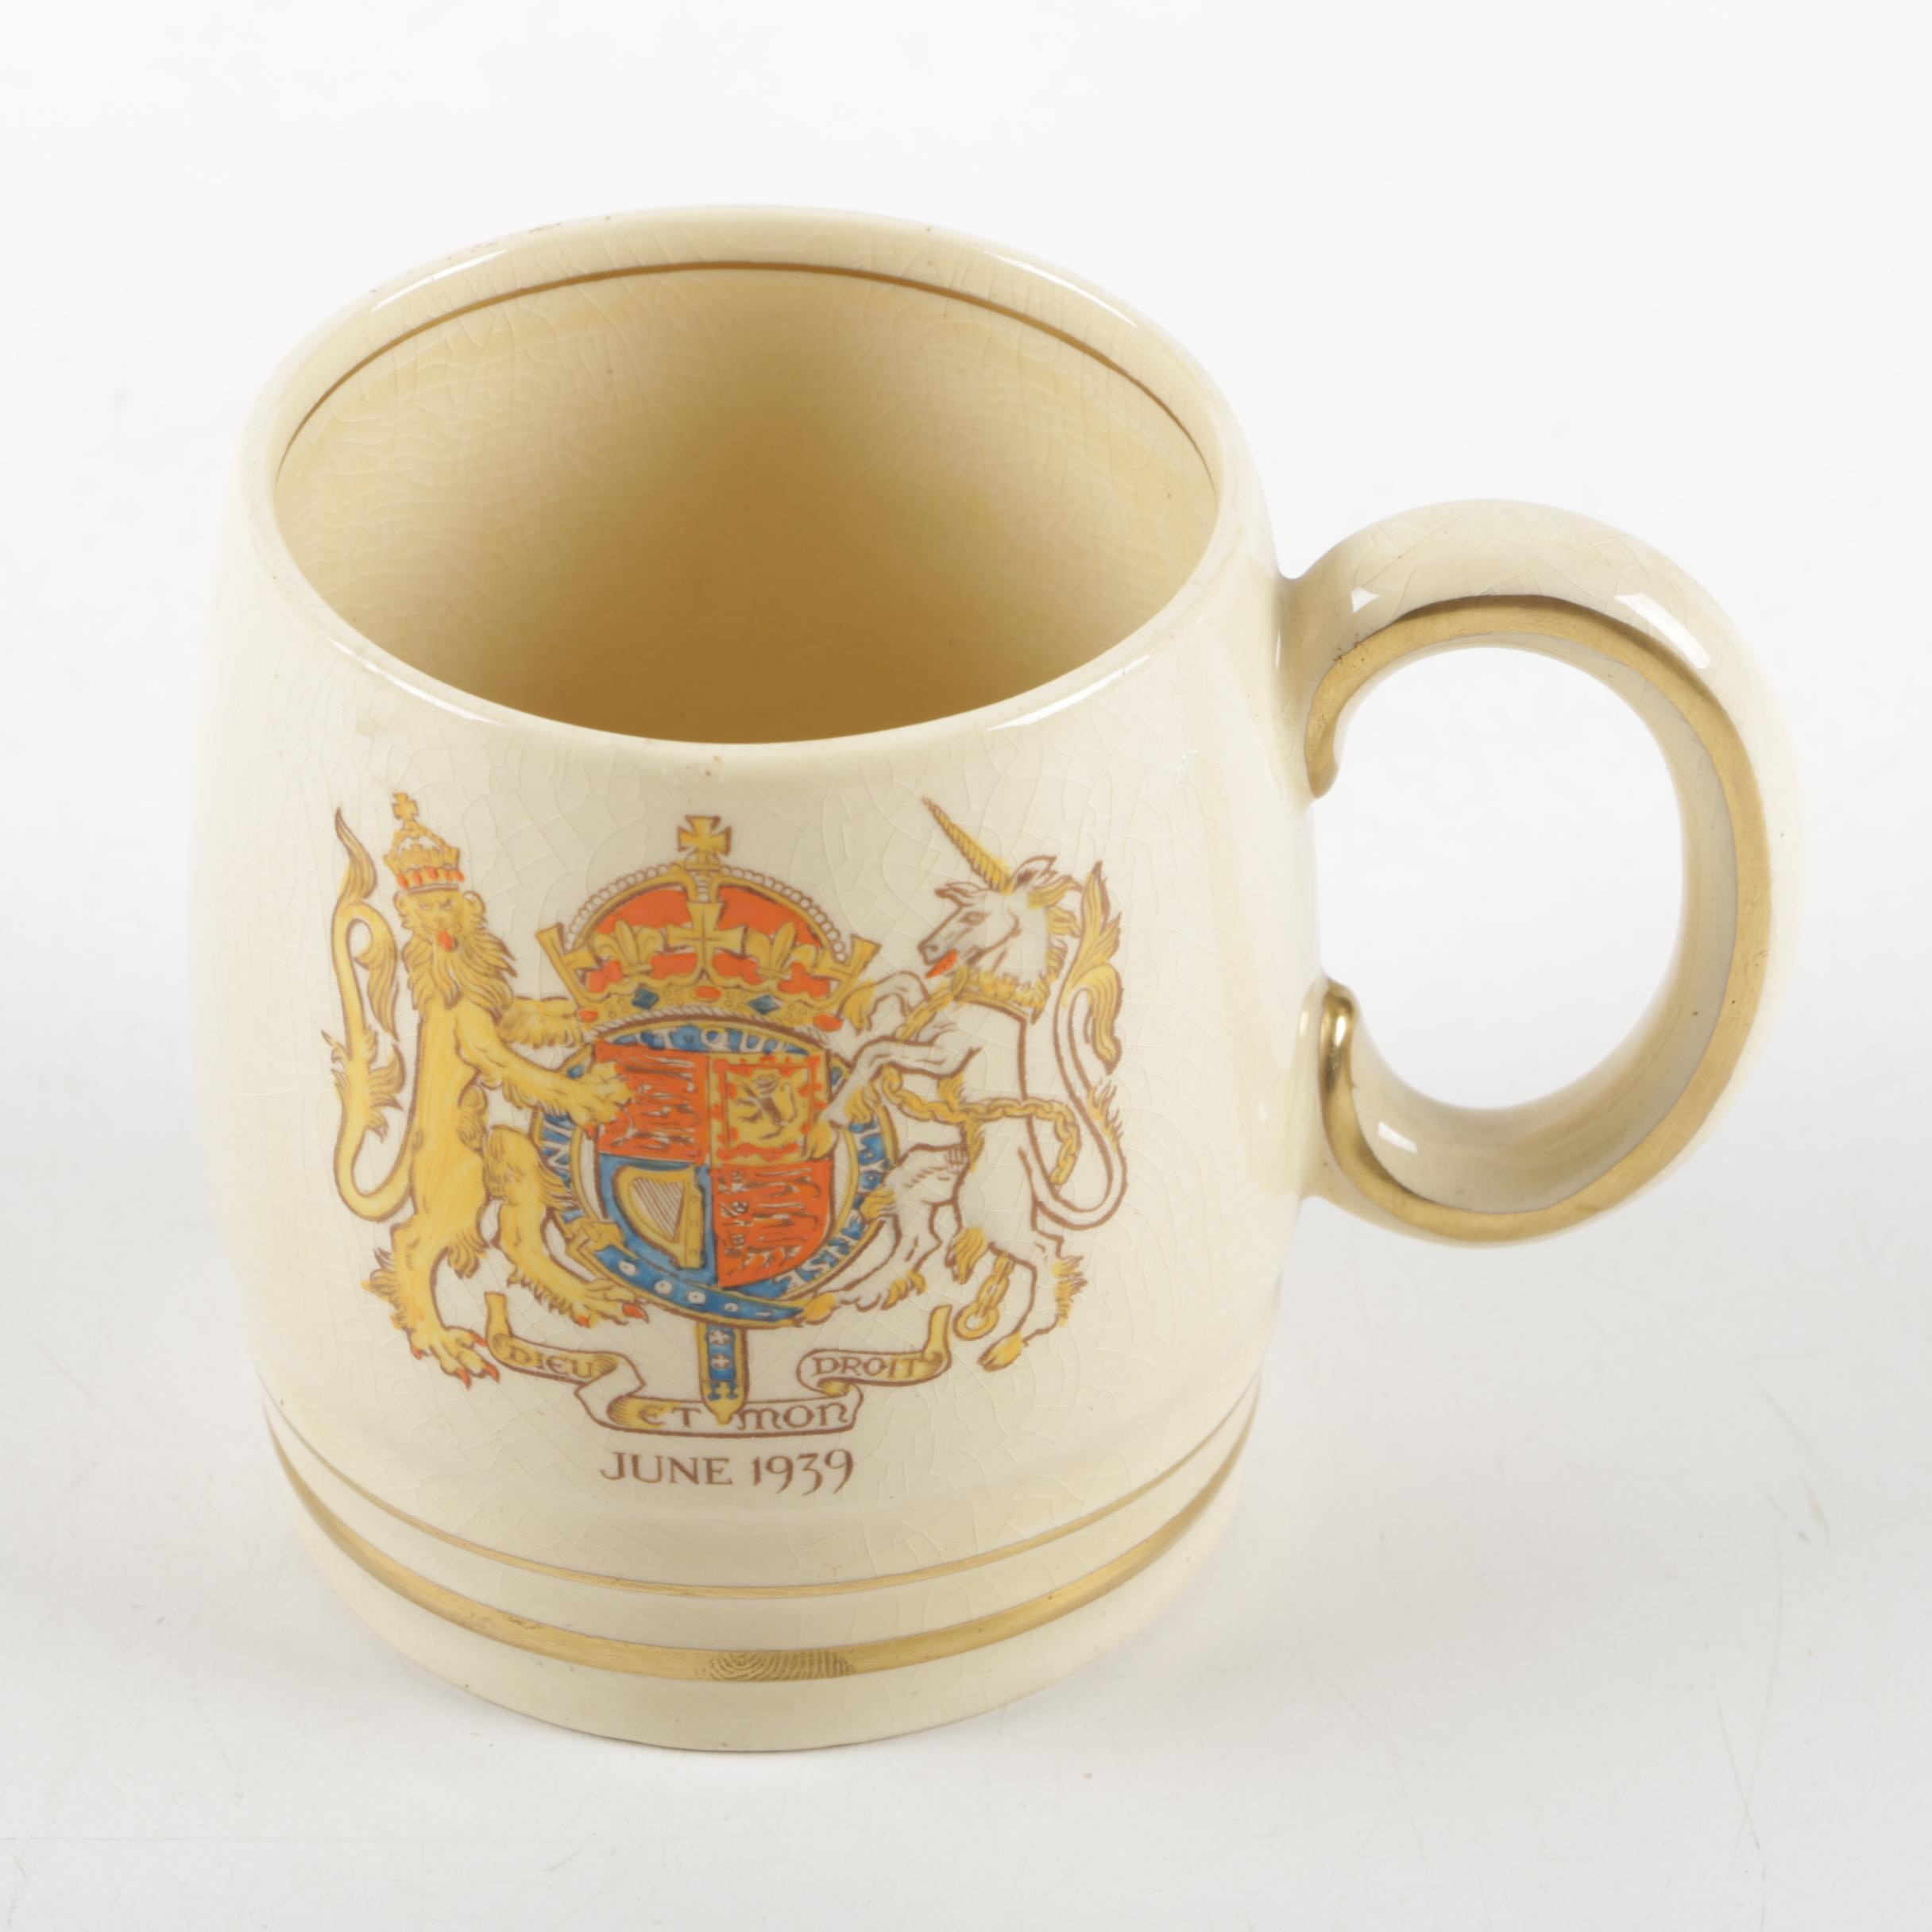 King George and Queen Elizabeth Visit Souvenir mug